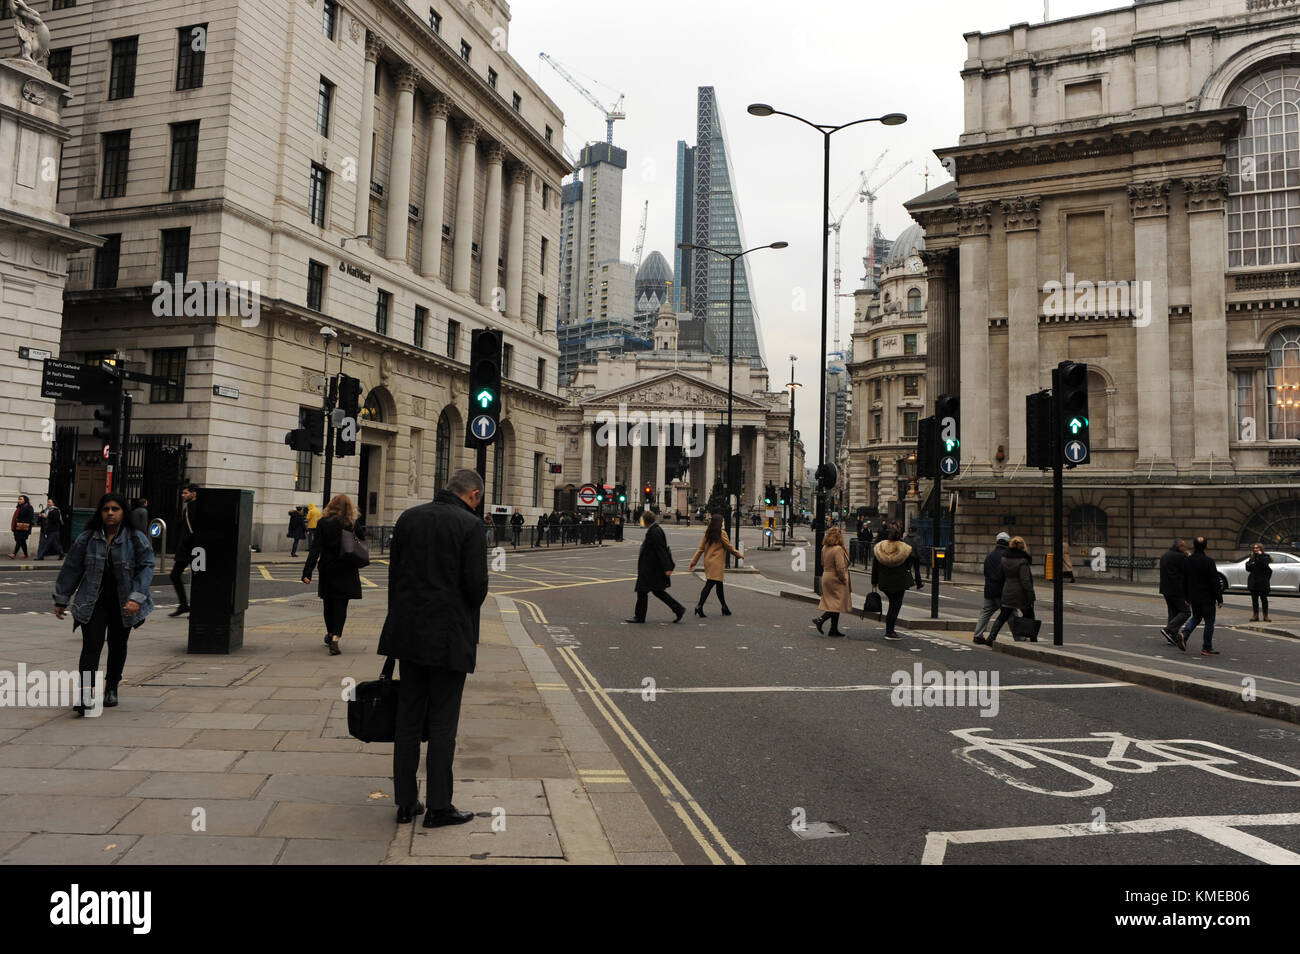 City workers cross the road on Queen Victoria Street in London, England - Stock Image